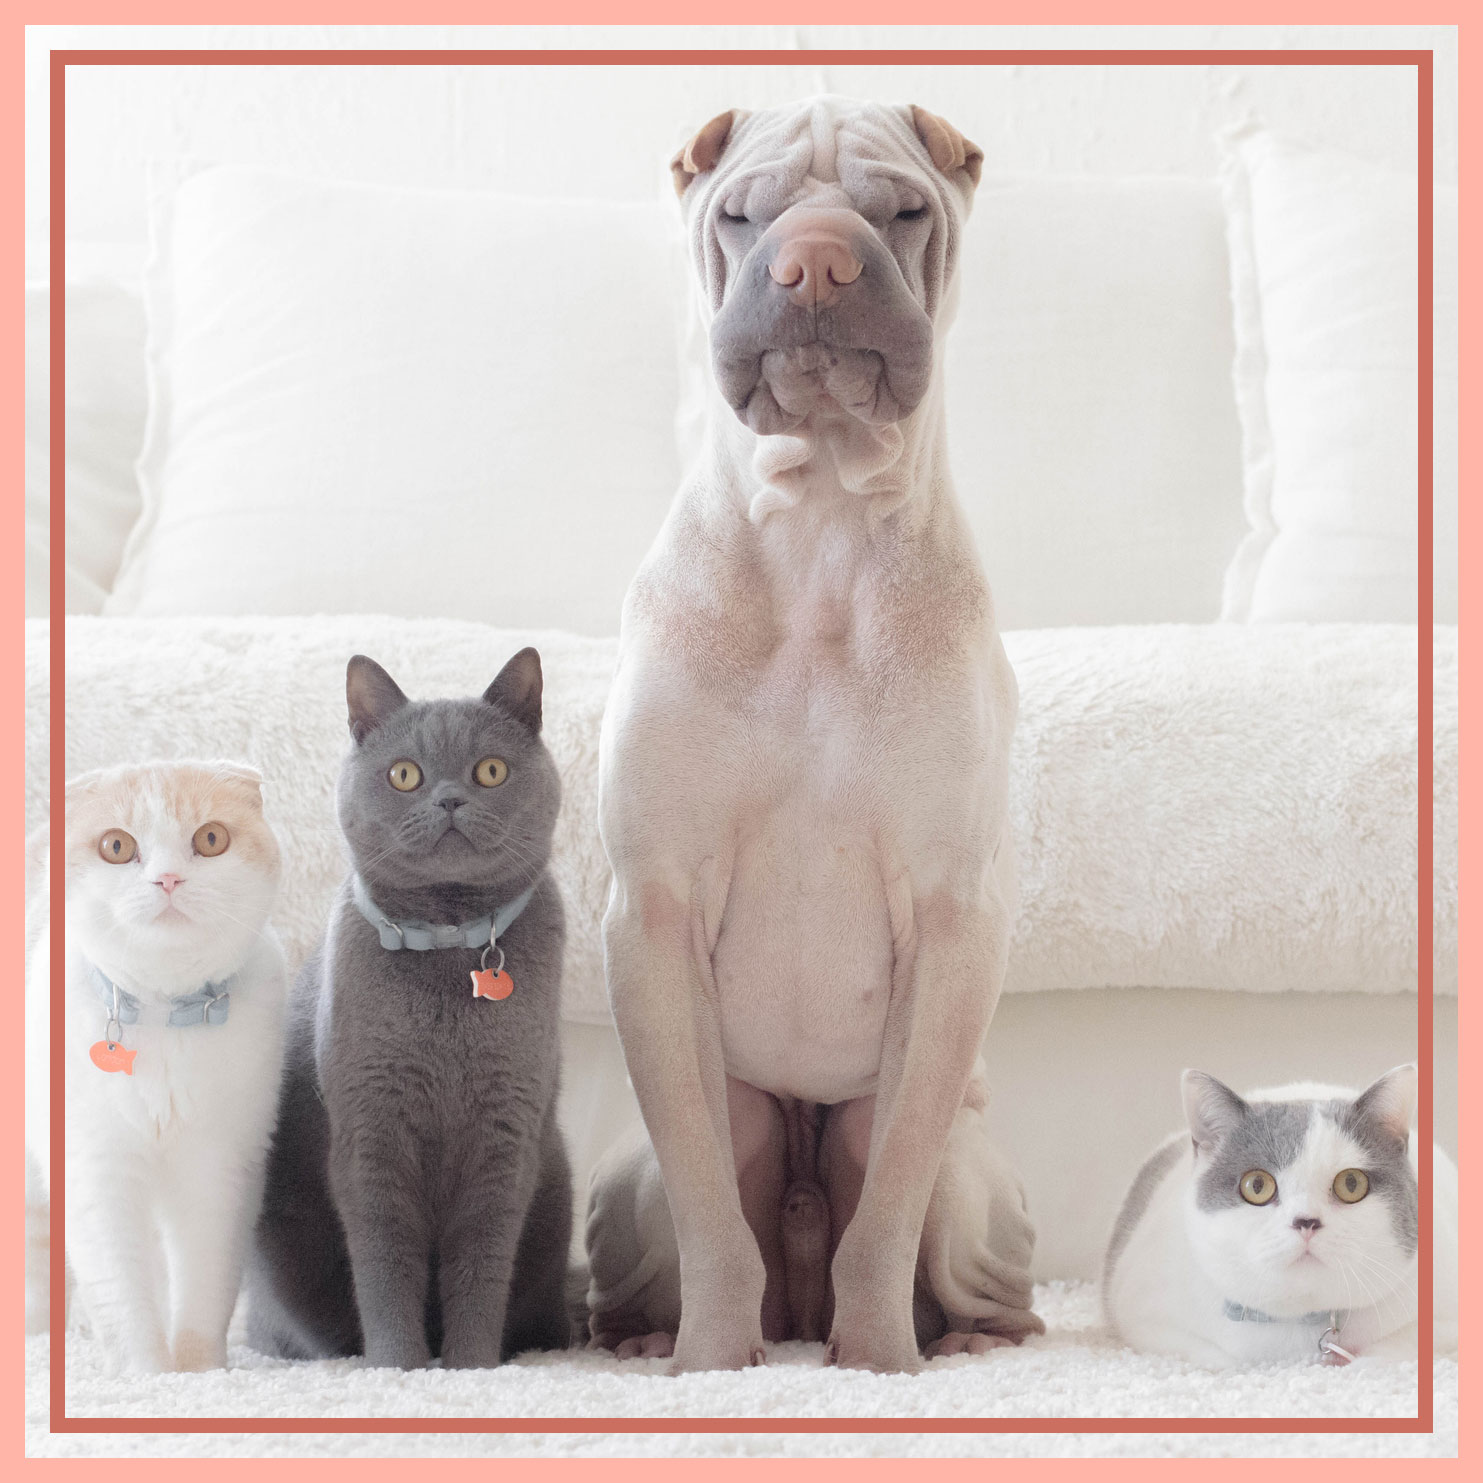 The Best Housekeeping Products for Pet Owners